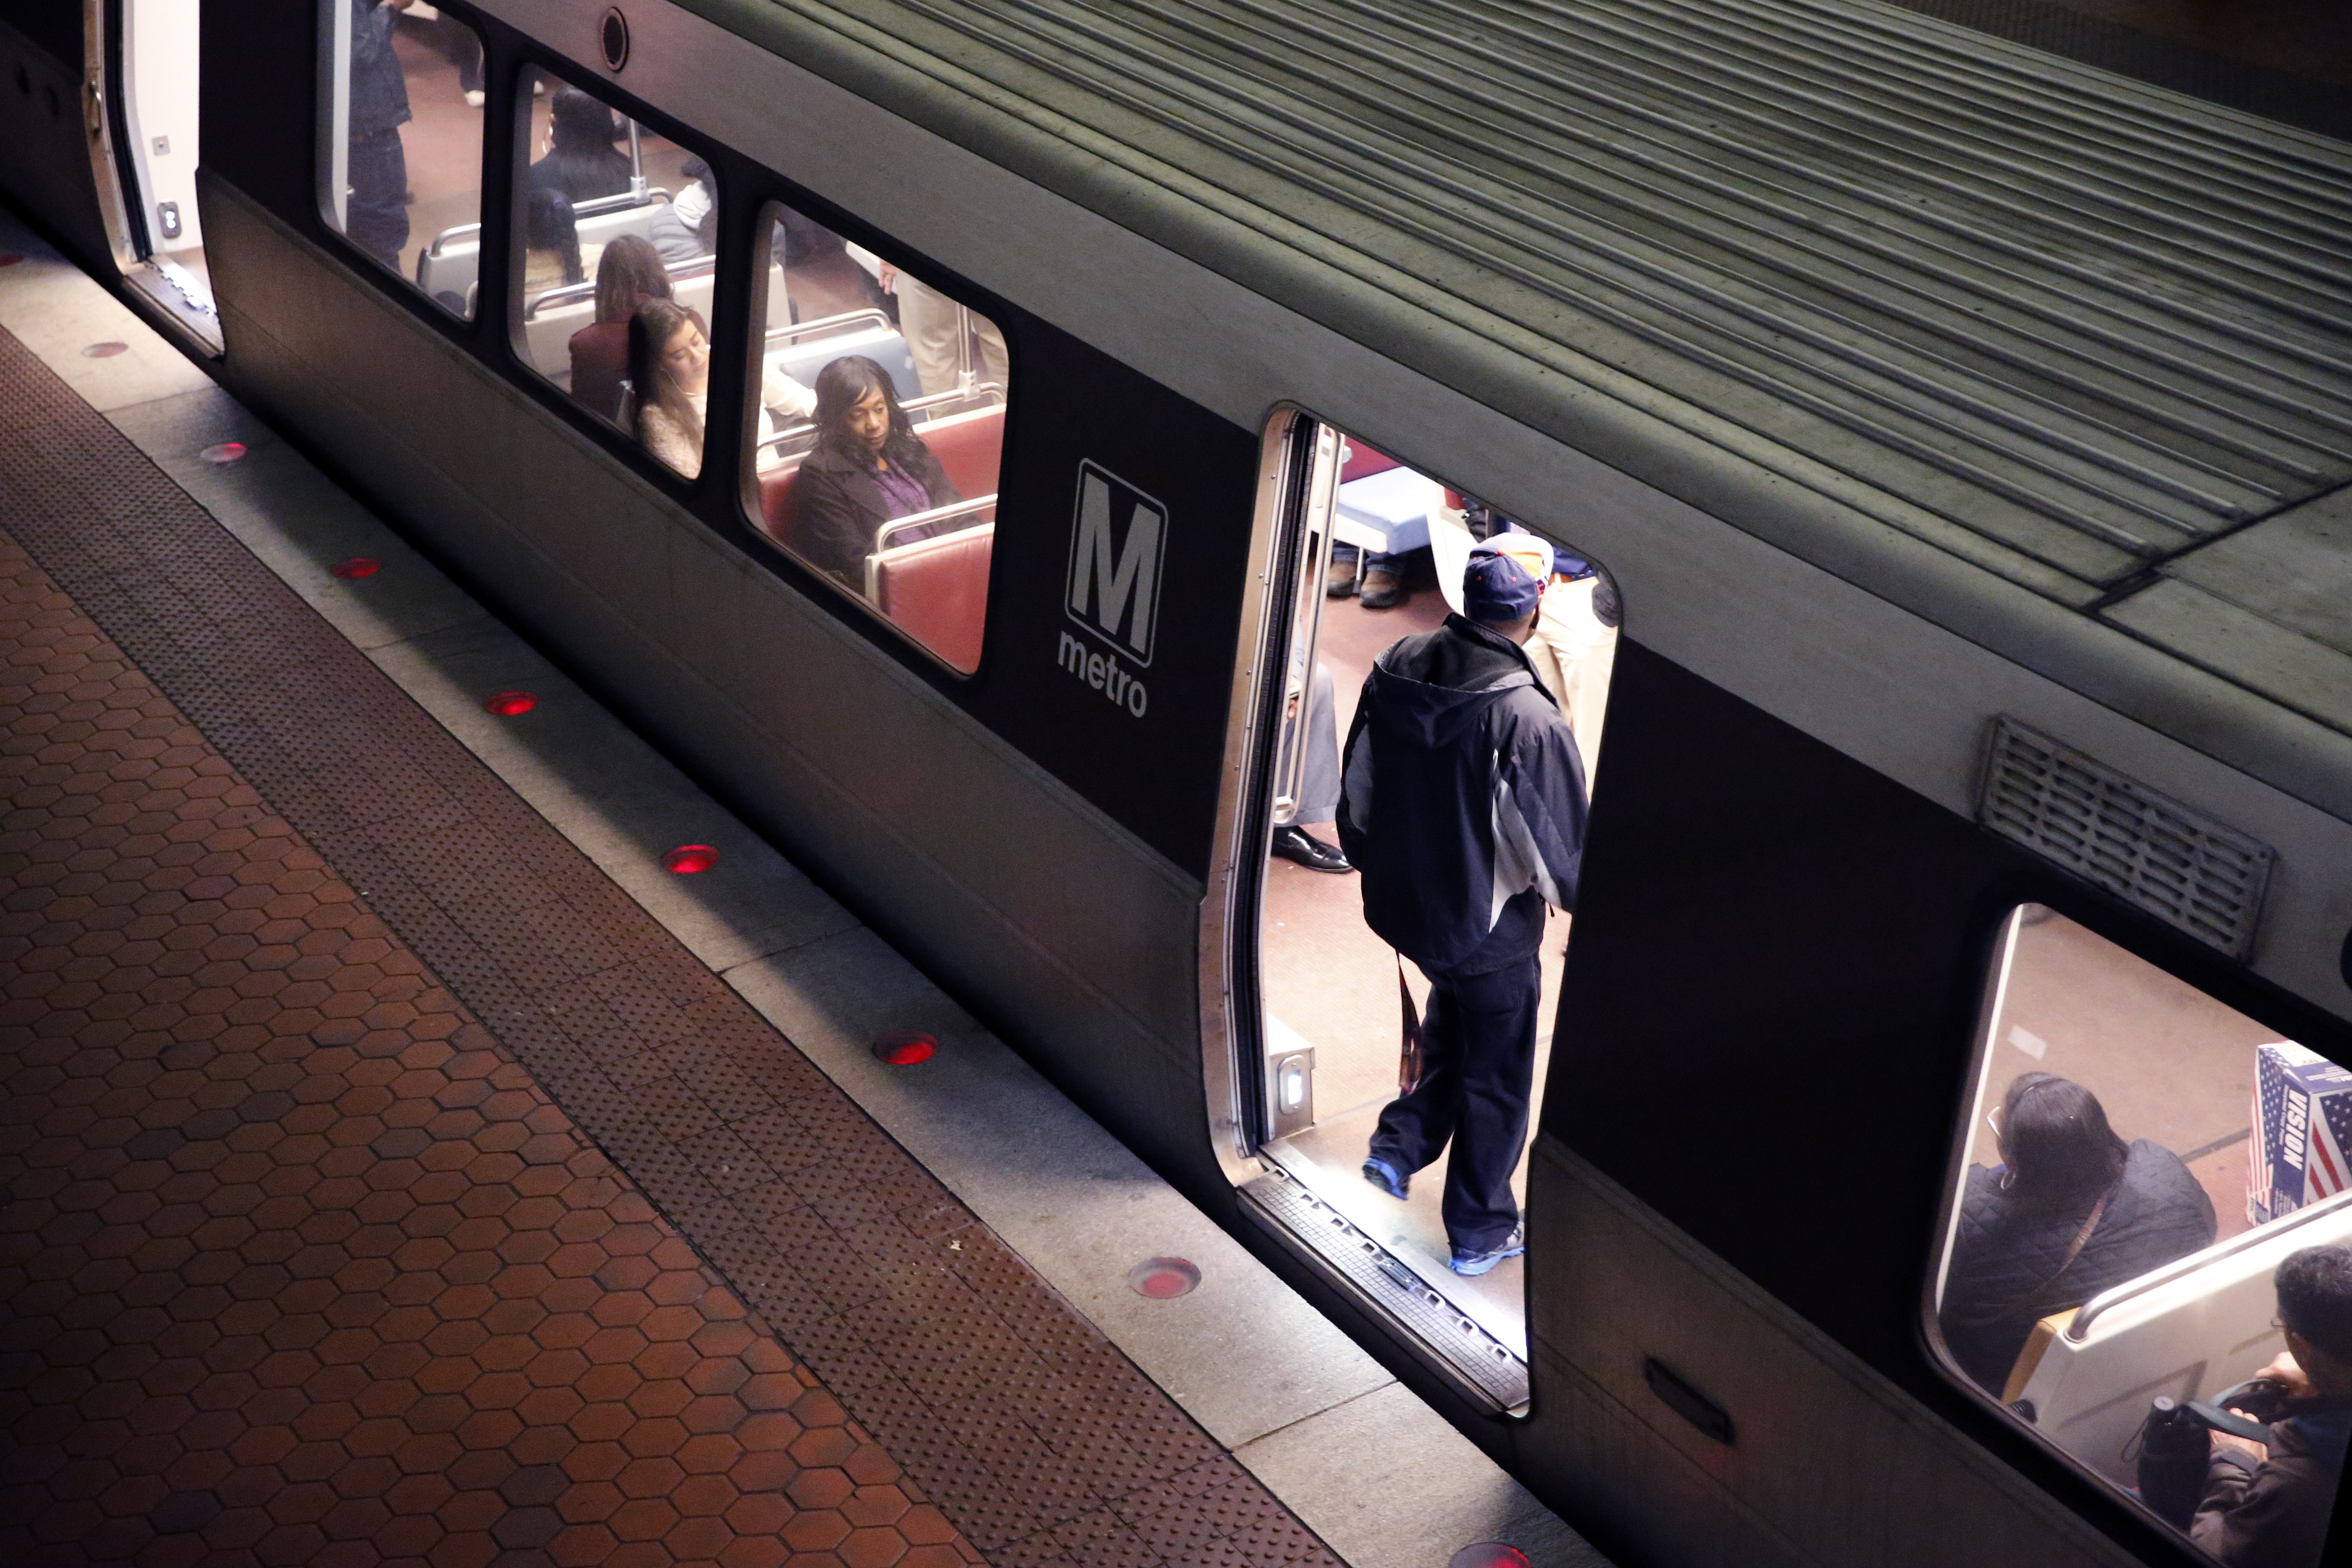 Metro riders say they didn't see more police Tuesday morning